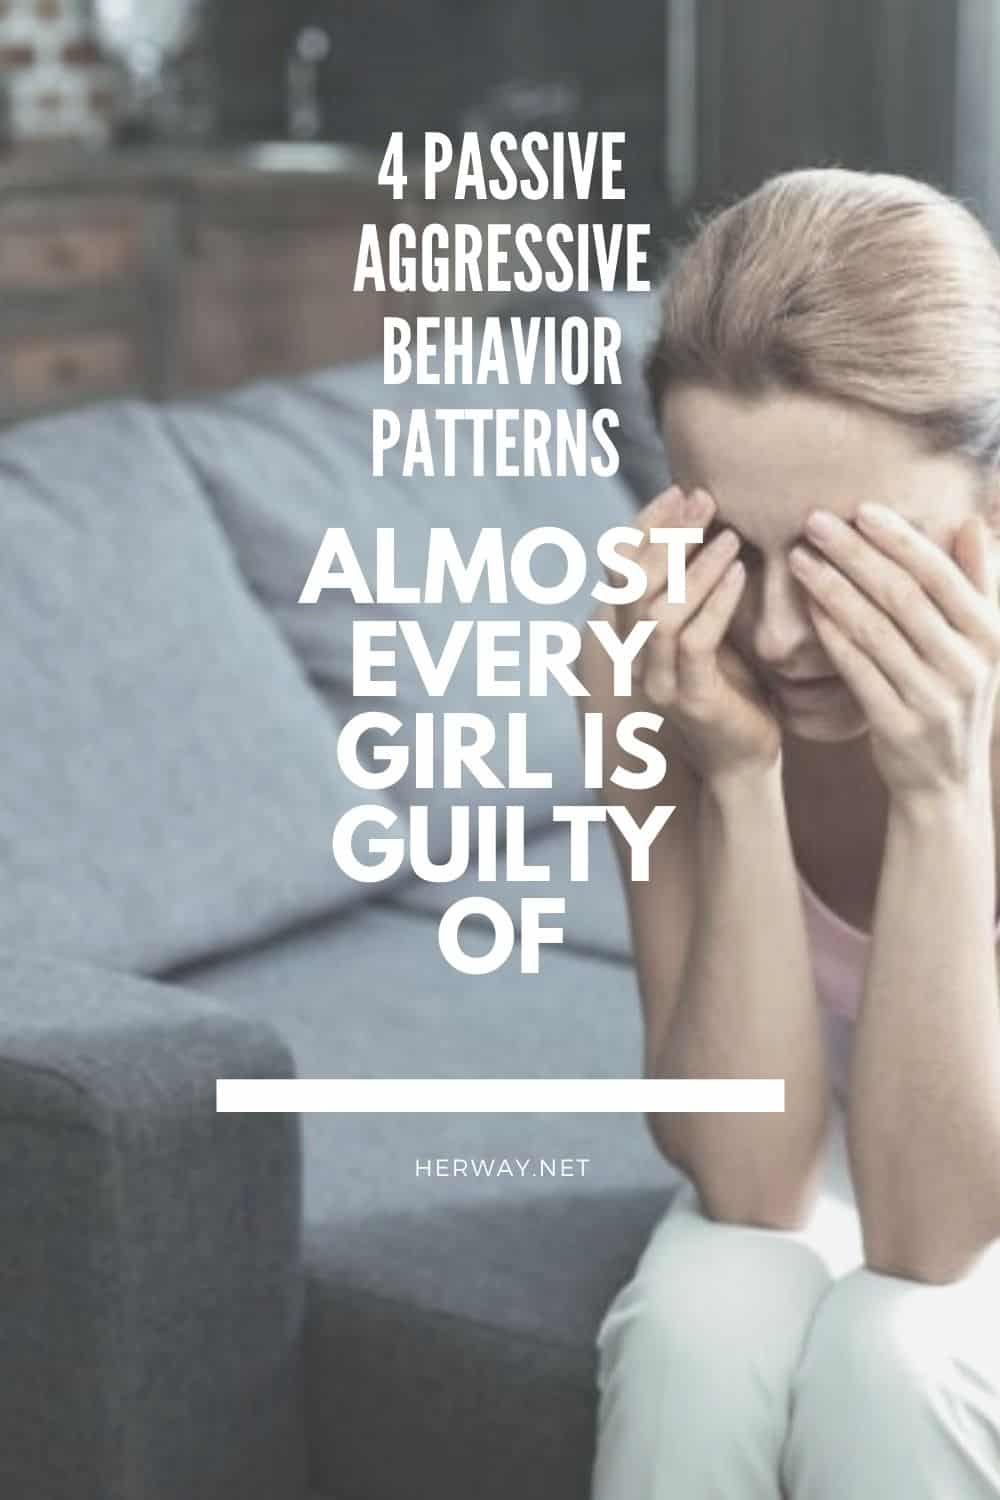 Almost Every Girl Is Guilty Of